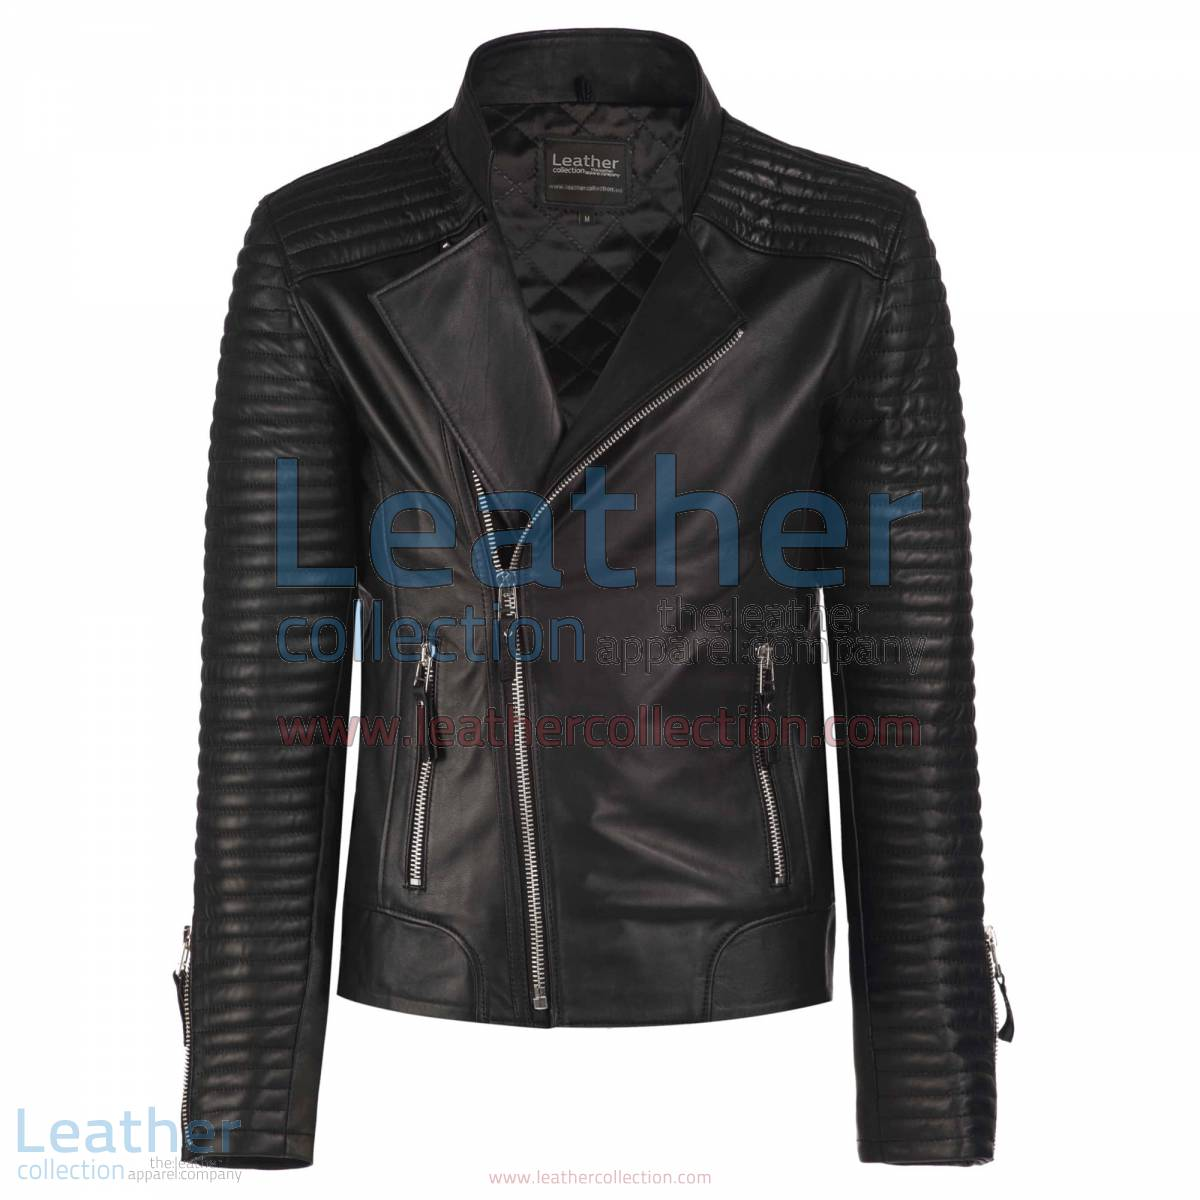 The Hunter Biker Leather Jacket | biker jacket,hunter biker jacket